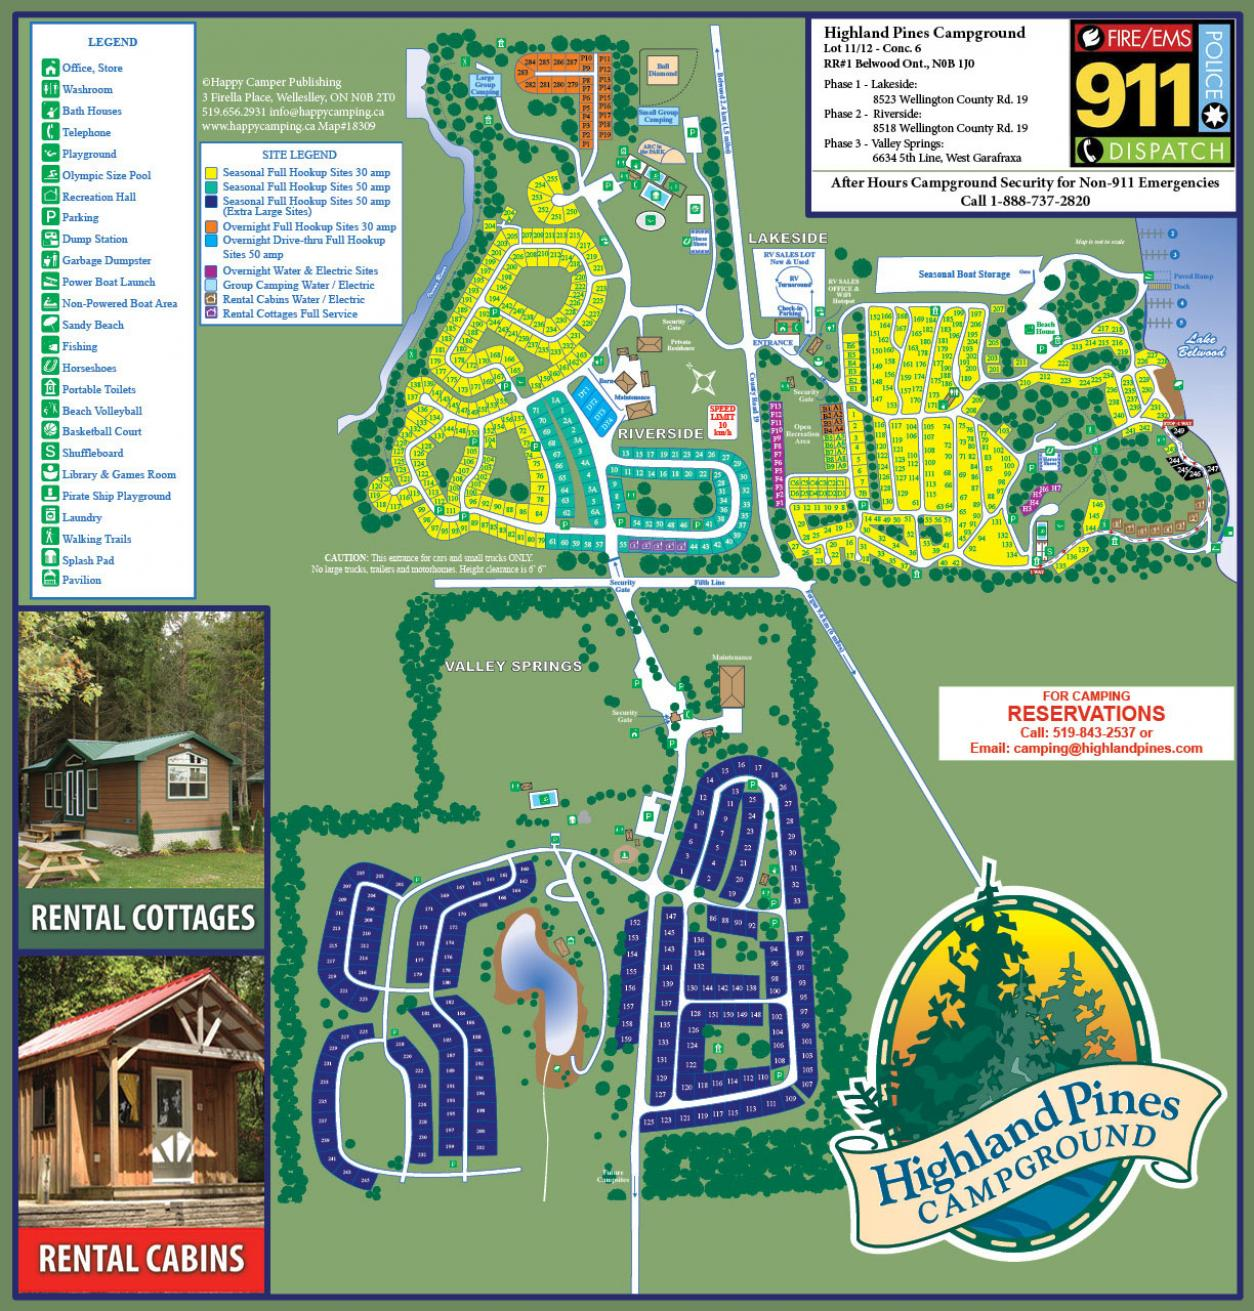 Campground Map | Highland Pines